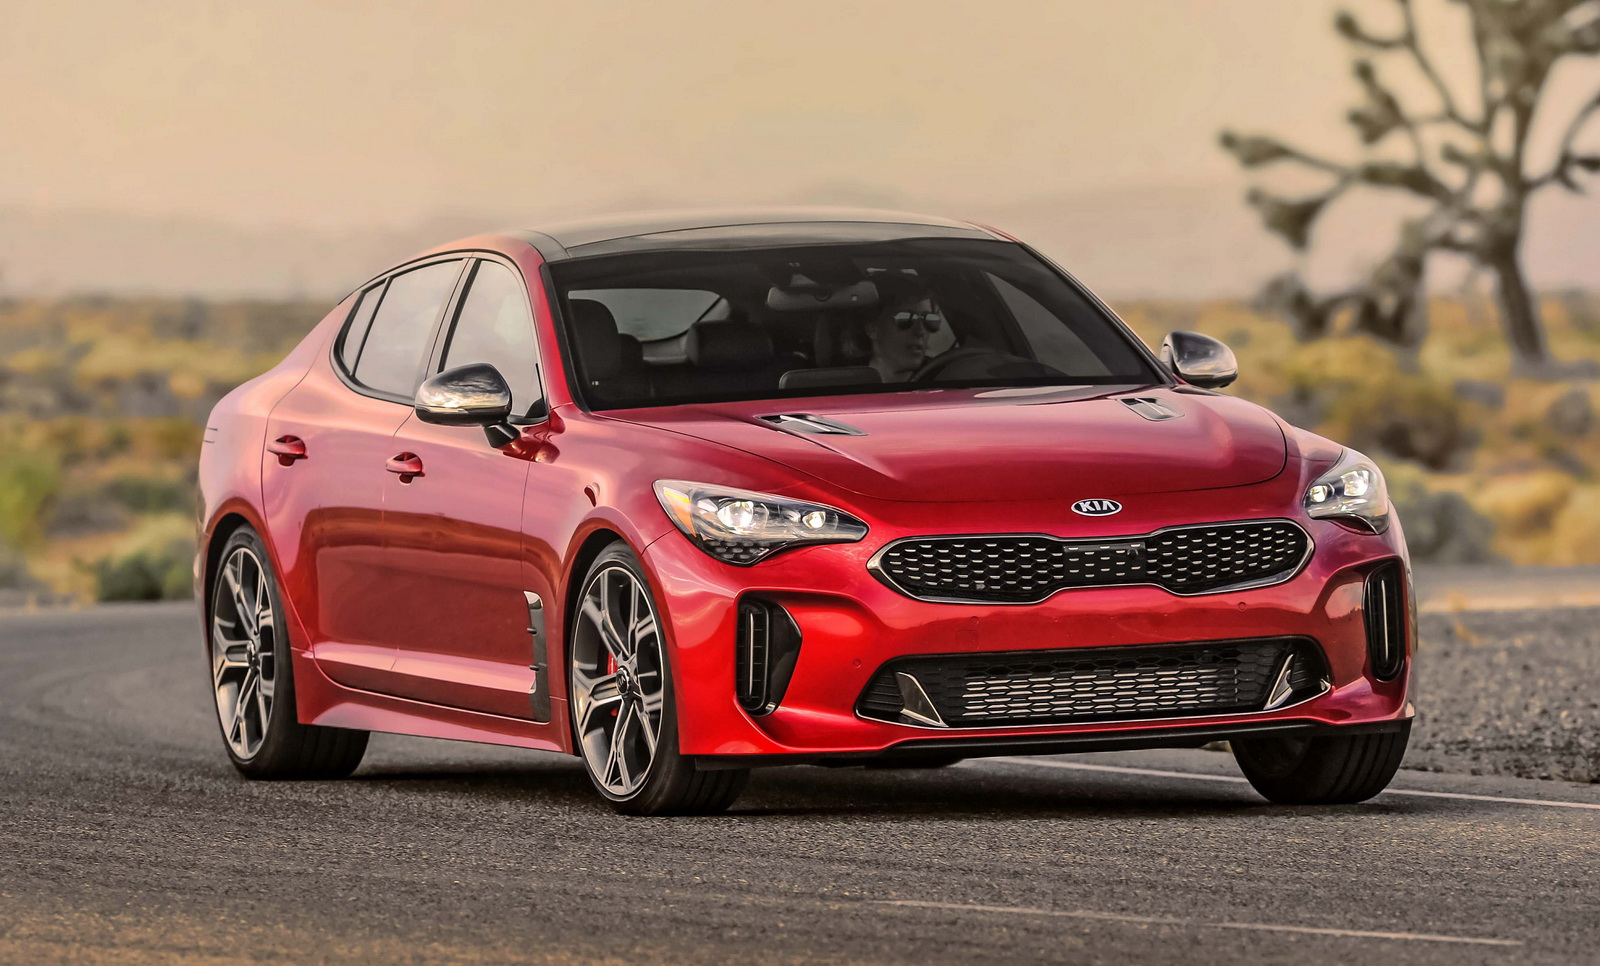 2018 kia stinger lease deals start from 382 a month carscoops. Black Bedroom Furniture Sets. Home Design Ideas